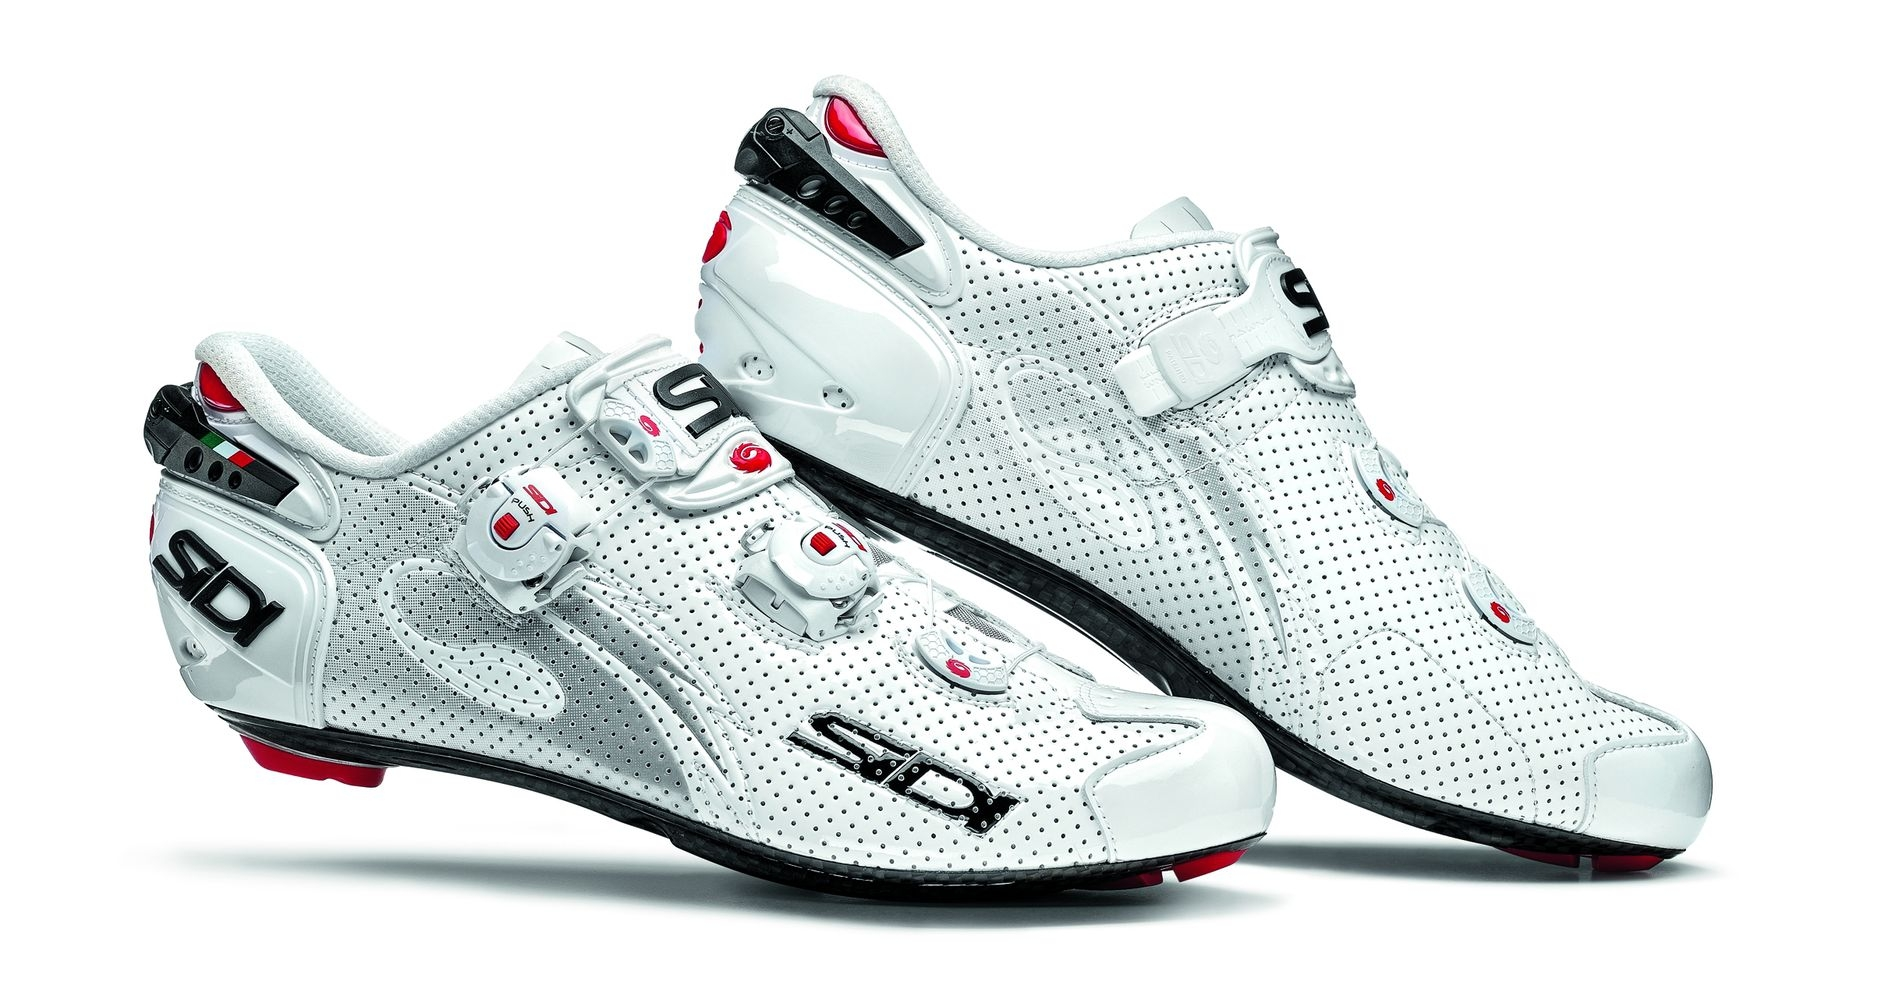 Chaussures Sidi WIRE Carbon AIR Vernice Blanc verni - 40